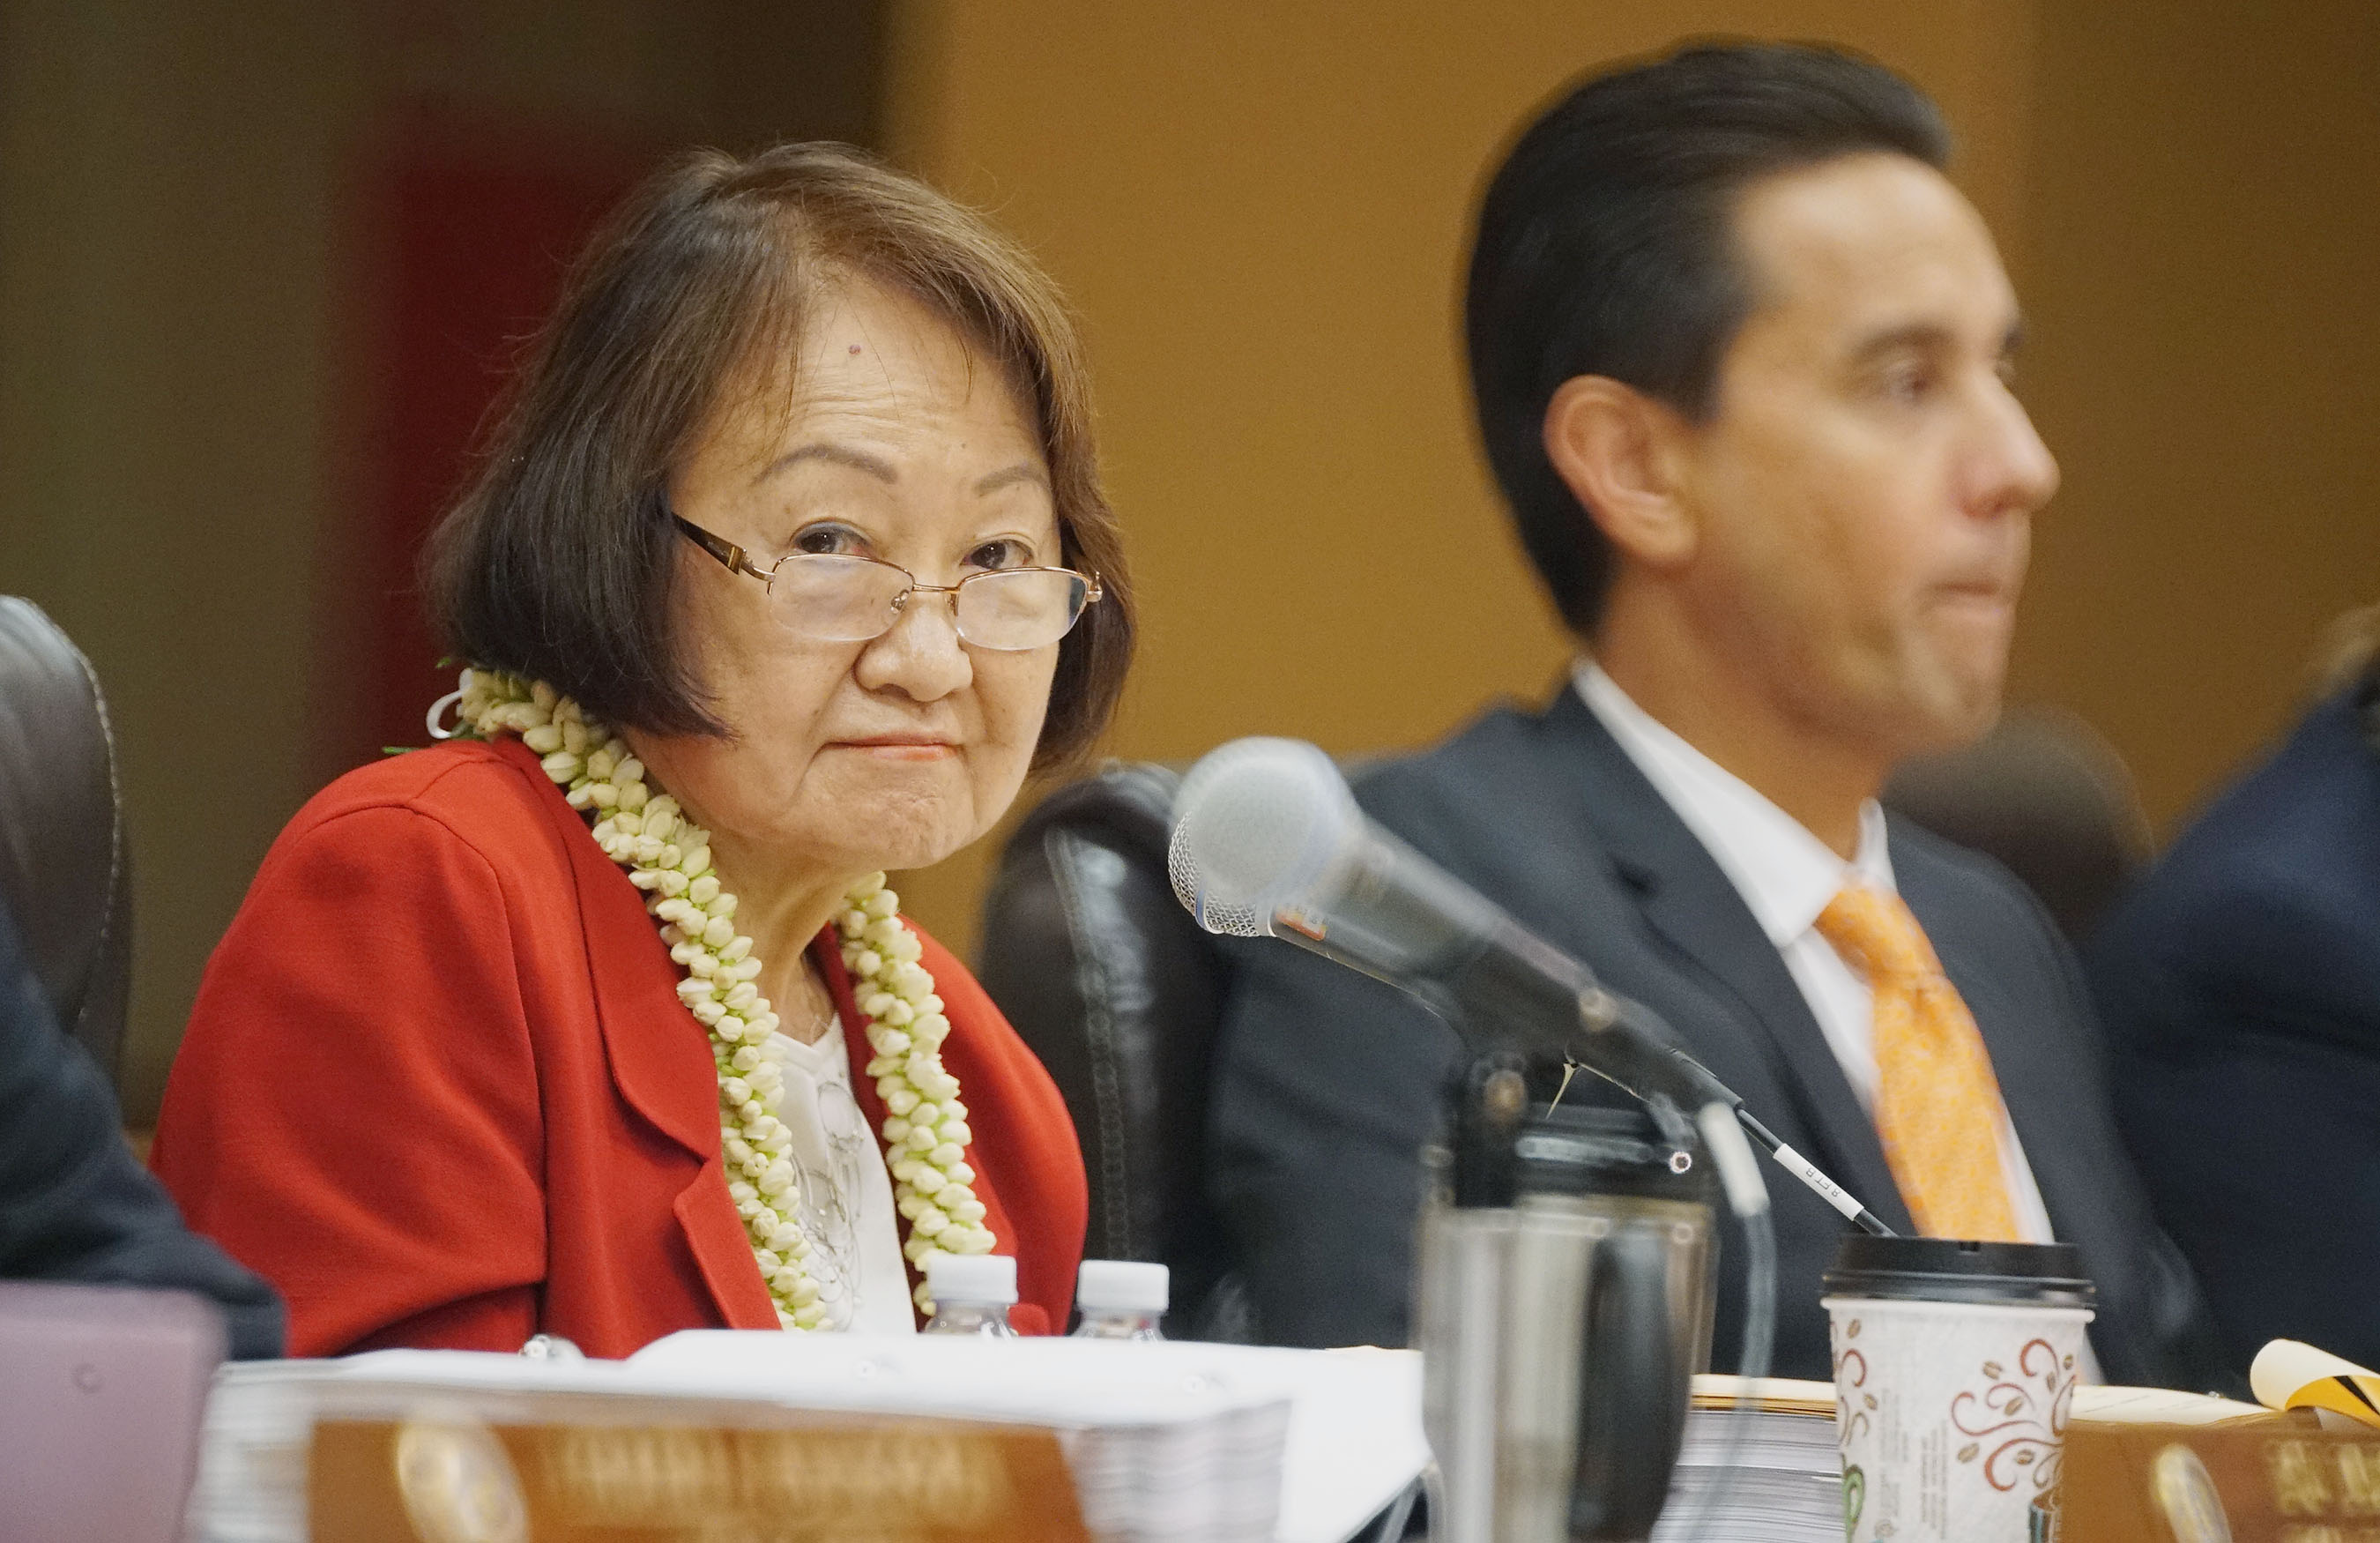 Honolulu City Council member Ann Kobayashi. 1 june 2016